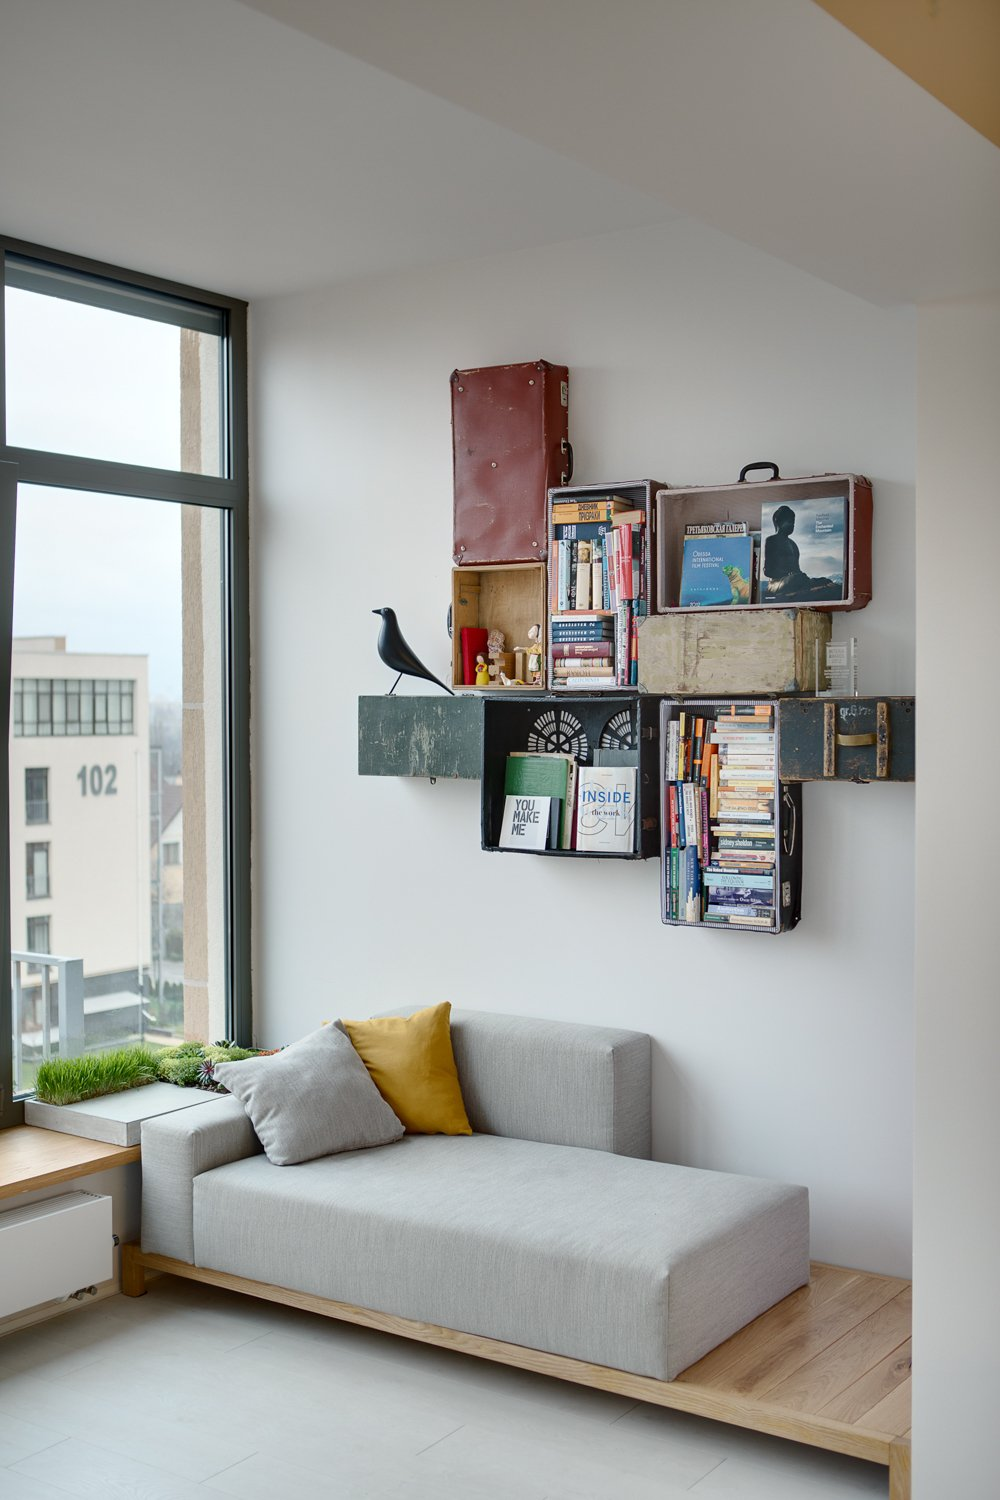 DIY Suitcase Shelves - A modern home with personality of perfect for a fun couple